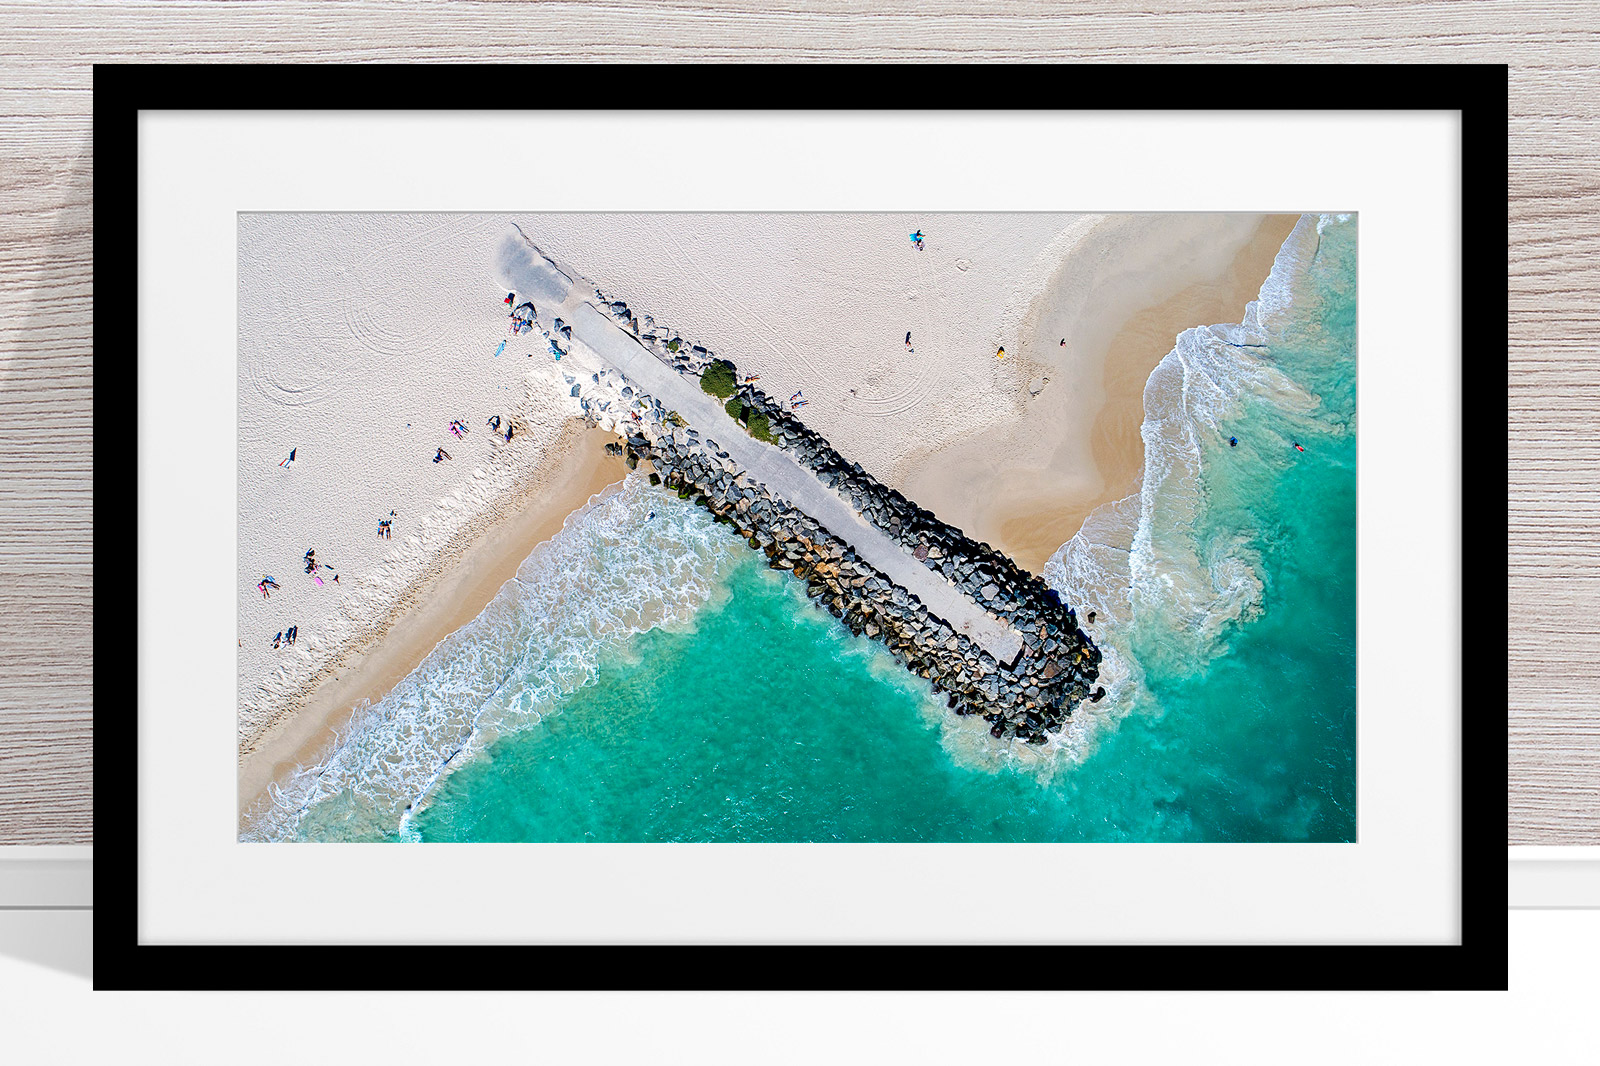 021 - Jason Mazur - 'City Beach Groyne' Black Frame